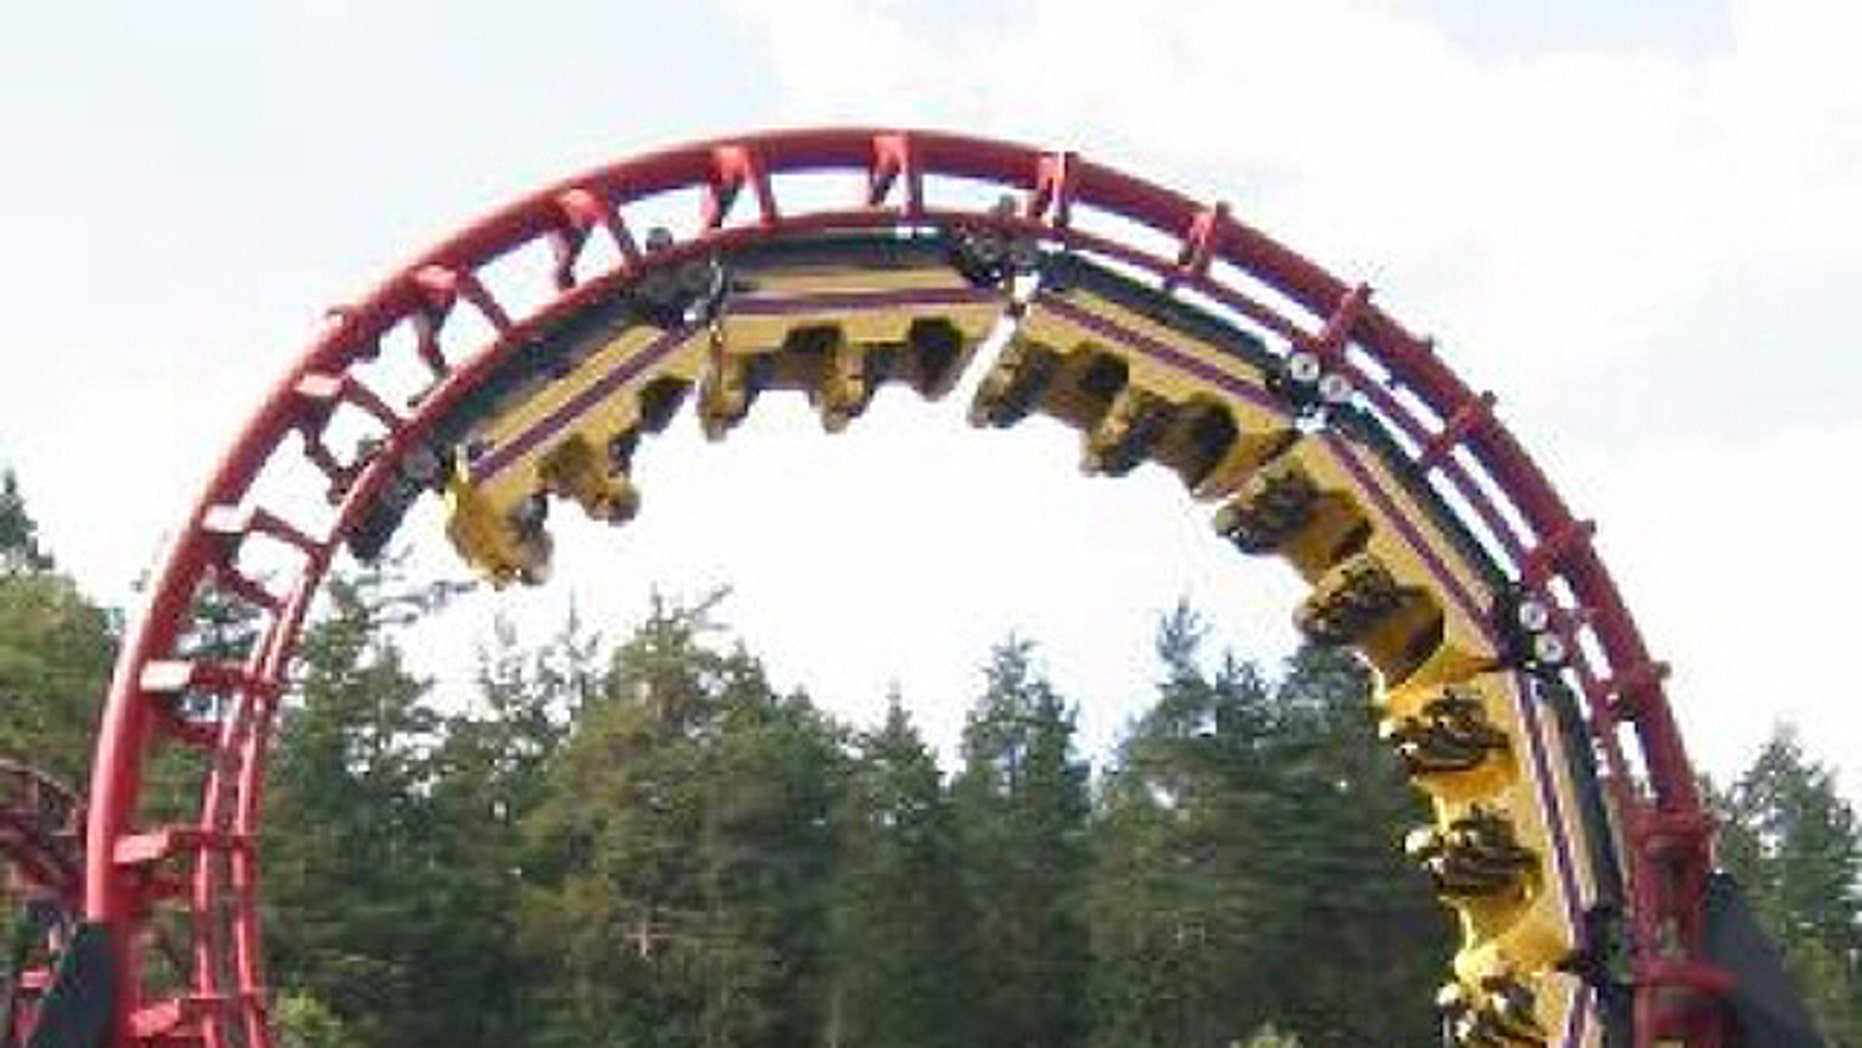 Swedish mathematicians have published new designs for what can eaily be the smoothest roller coaster ride.